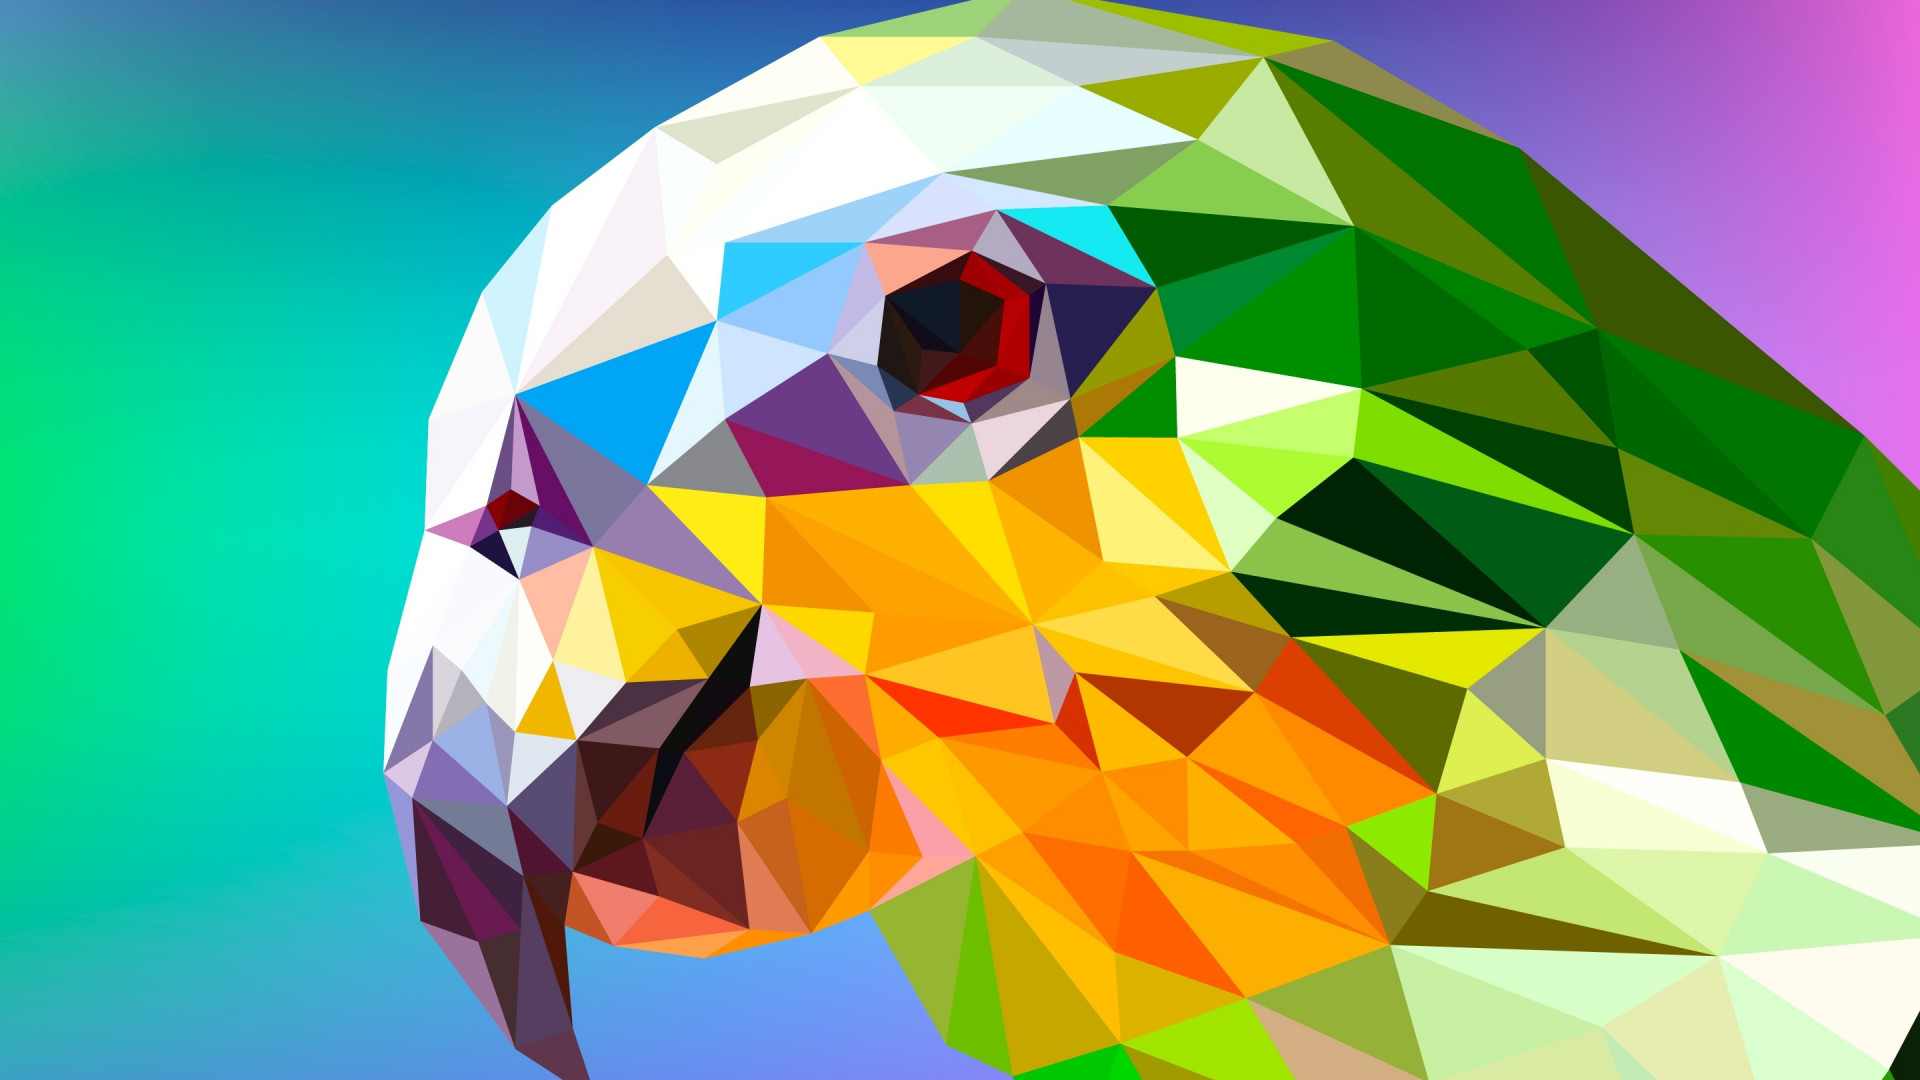 Low Poly Illustration: Parrot | 1920x1080 wallpaper